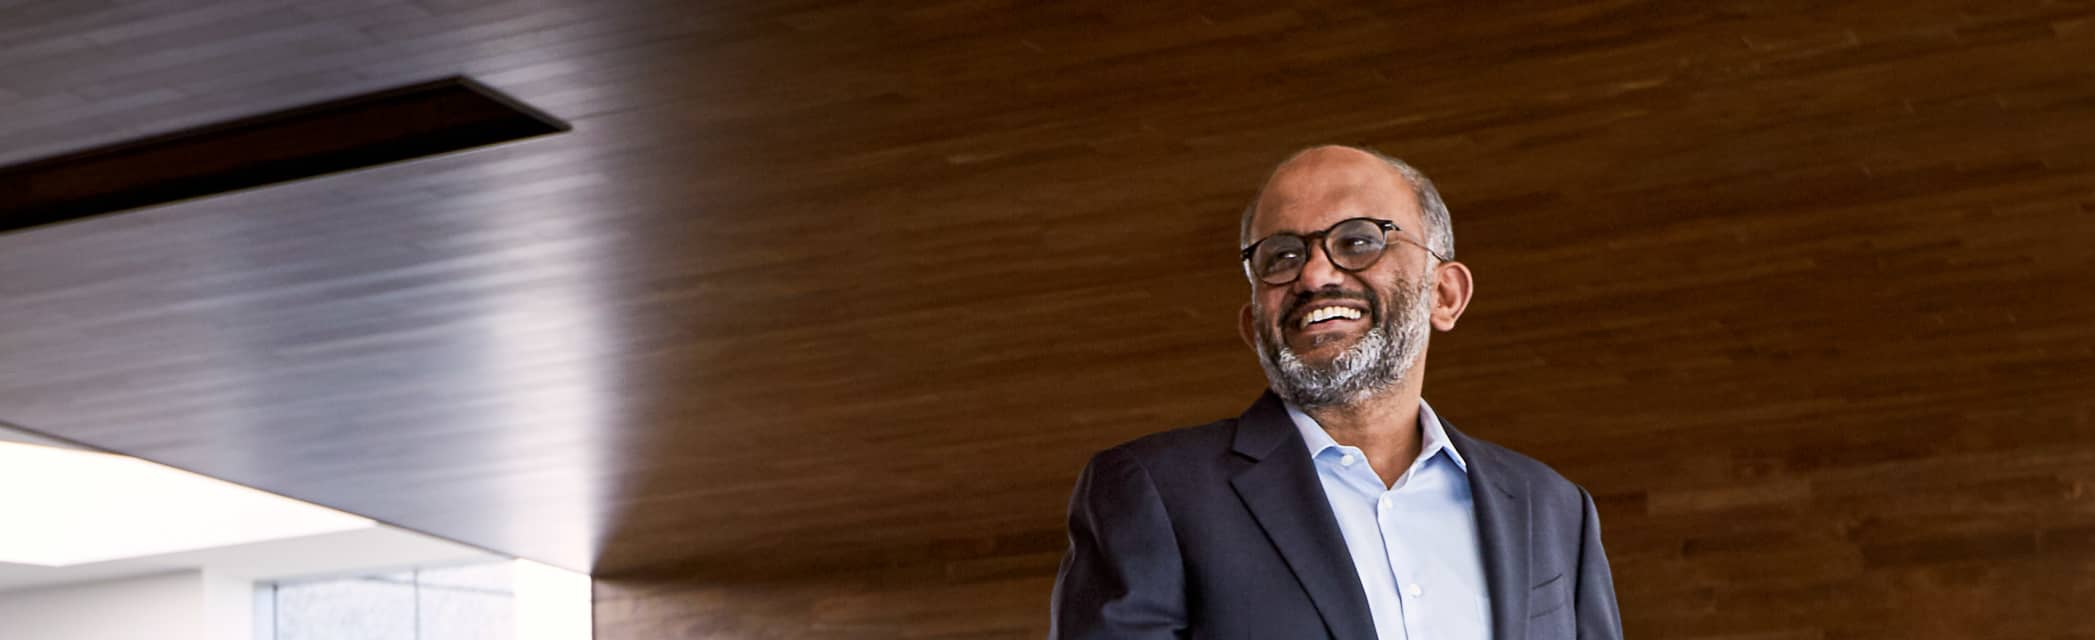 Shantanu Narayen - CEO of Adobe Systems